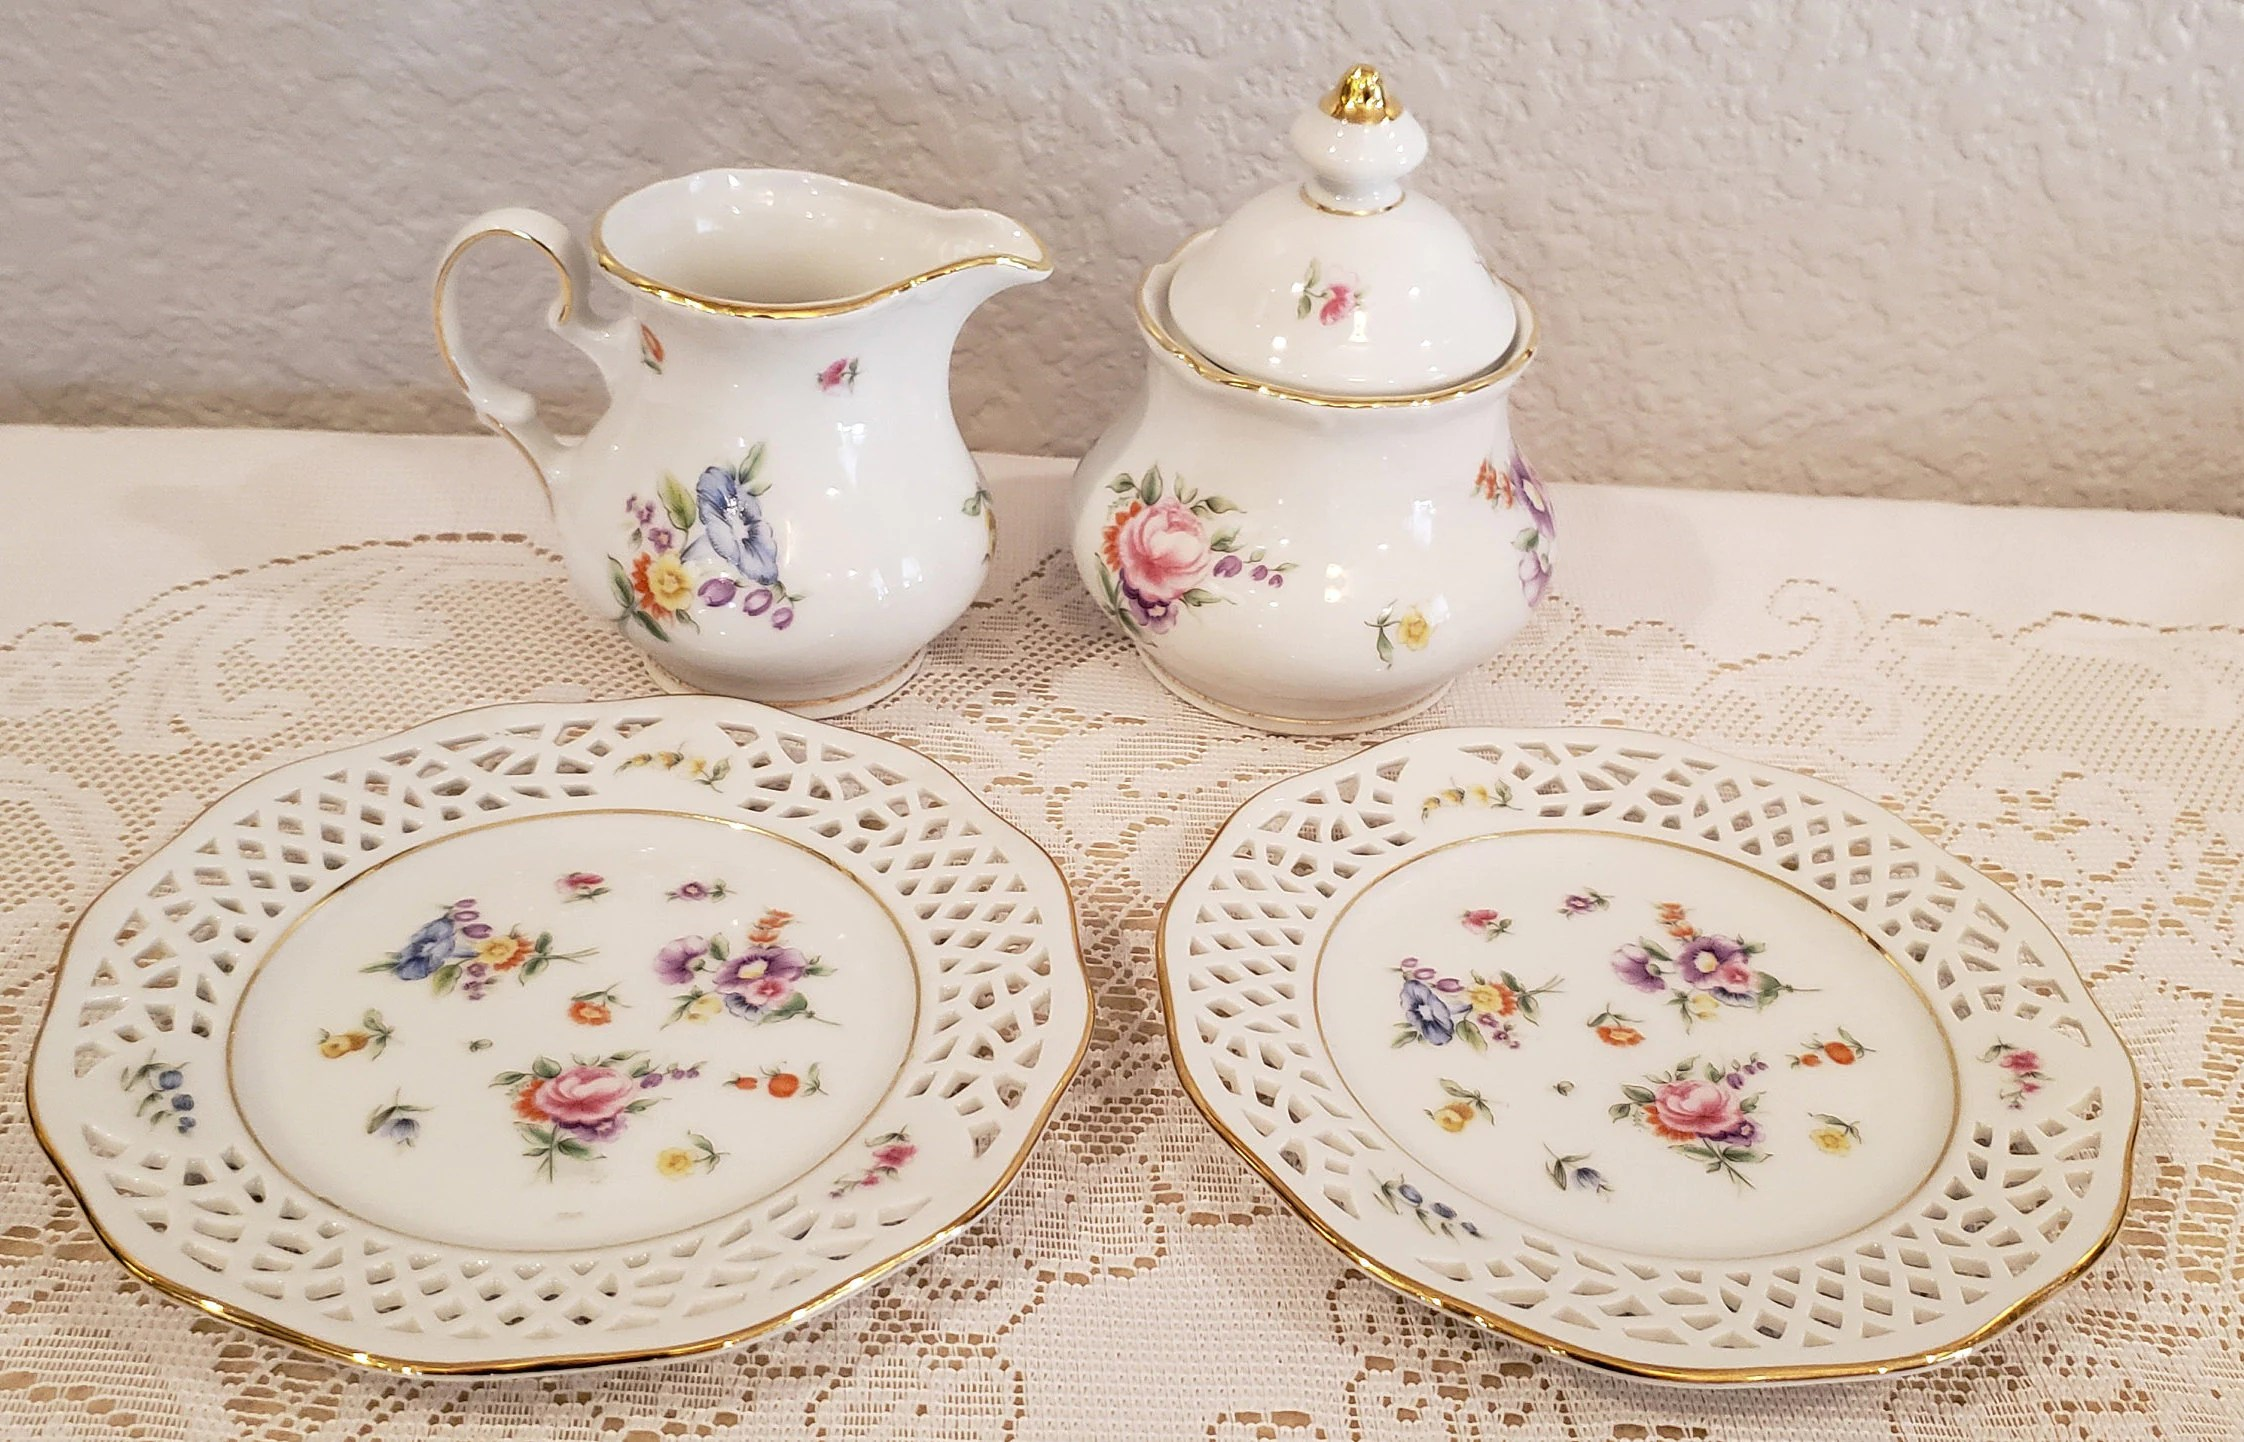 Feines Porzellan Burg Lindau Cream And Sugar Set With 2 Plates Feines Porzellan